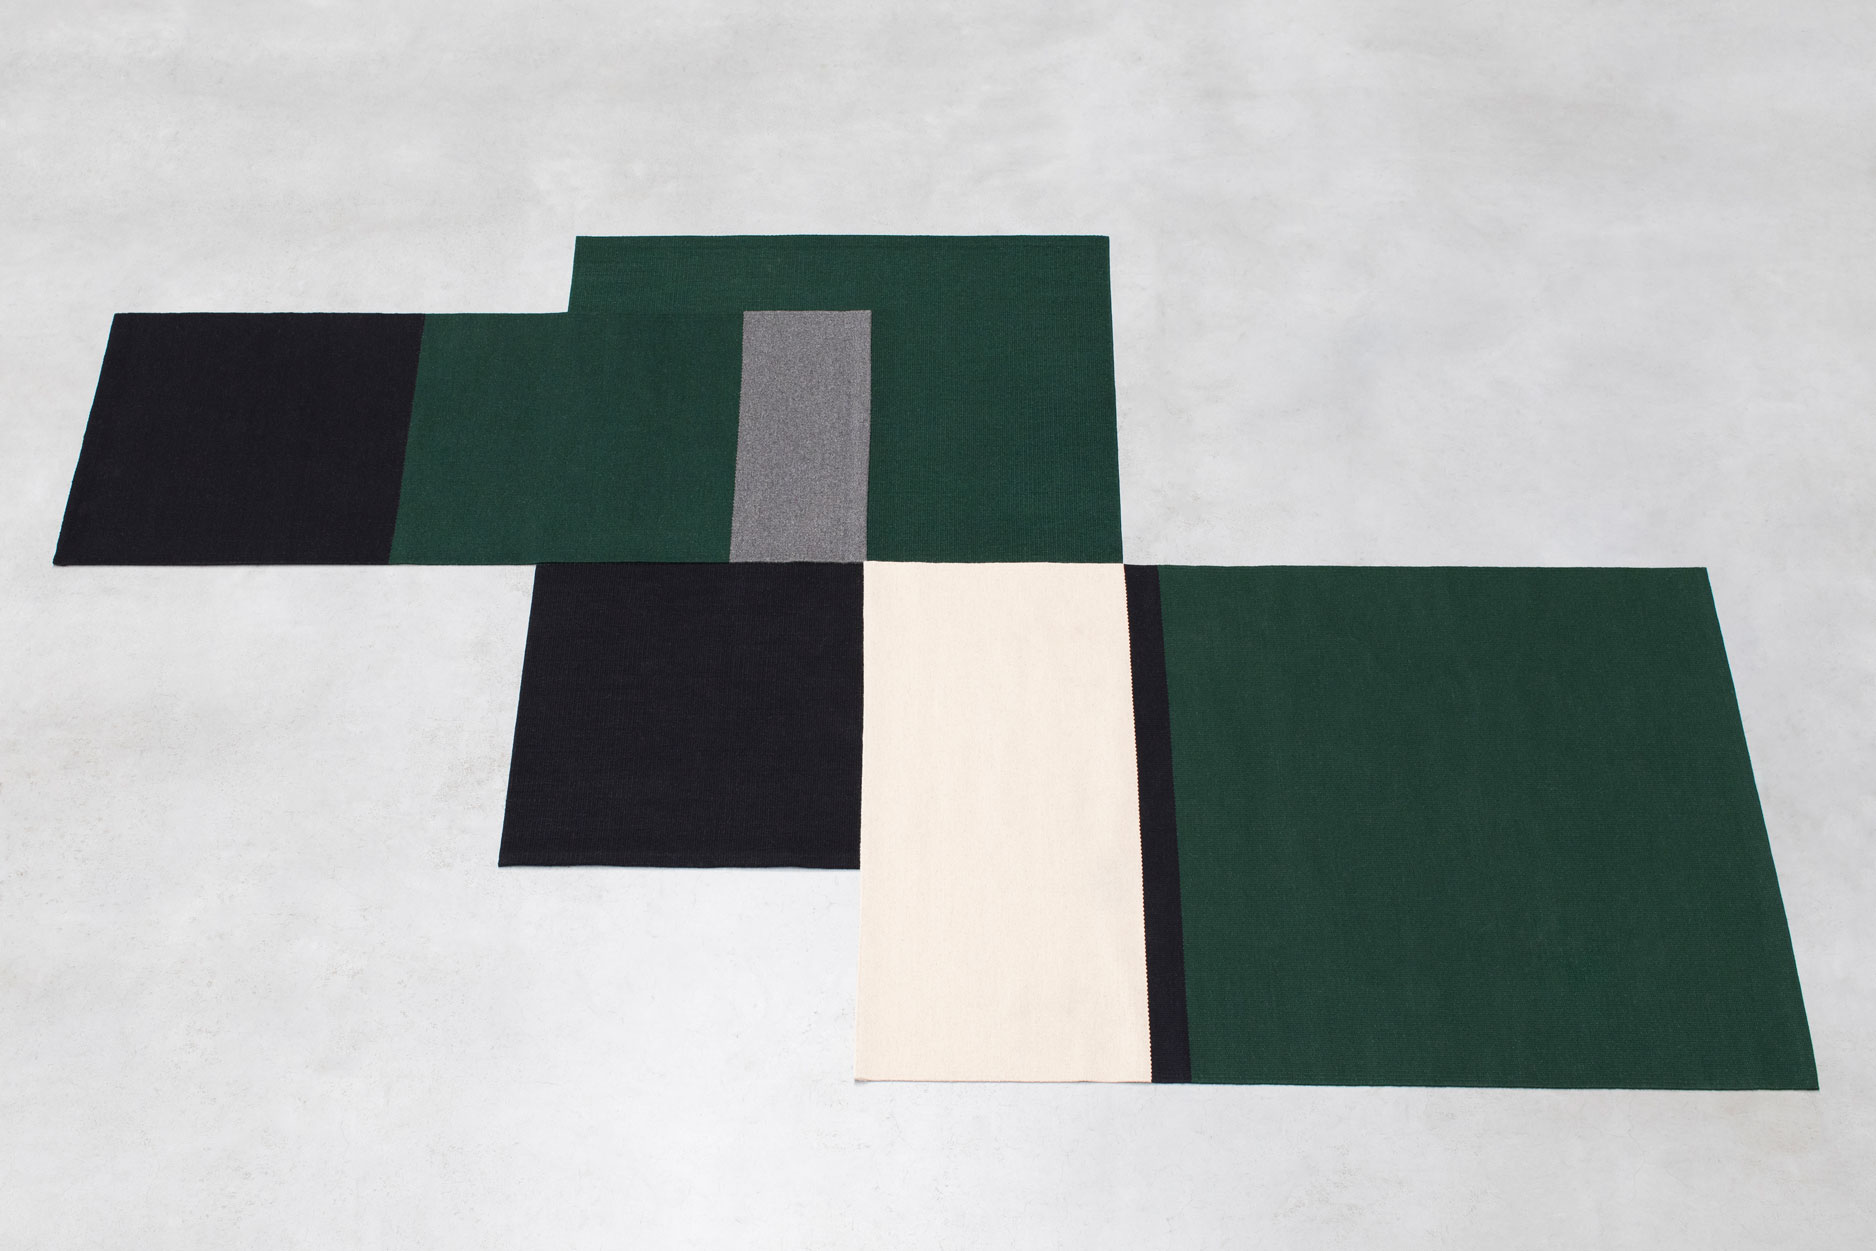 Ivy Small Rug - <p>The Alfred collection consists of five series (Fran, Frenzy, Lucy, Ivy, Billie) of handwoven minimalist carpets made by Belgian textile designers Marie Mees and Athérine Biasino. Firstly, all carpets are handwoven with a mixture of two top-shelf wools from New Zealand and Portugal, the first offering the right softness and look, the other adding strength. Secondly, the designers envision a minimalist aesthetic that resonates timelessness and not trendiness. In fact, hyped colours are fiercely avoided. By offering highly durable and supremely sober carpets, the Alfred Collection honours the archetype of the carpet, pure in form and in function, making it the perfect textile for the minimalist interior of the design admirer. Composition of the carpet is a mixture of Merino, New Zealand and Beira Alta (Portuguese wool).</p>  | Matter of Stuff